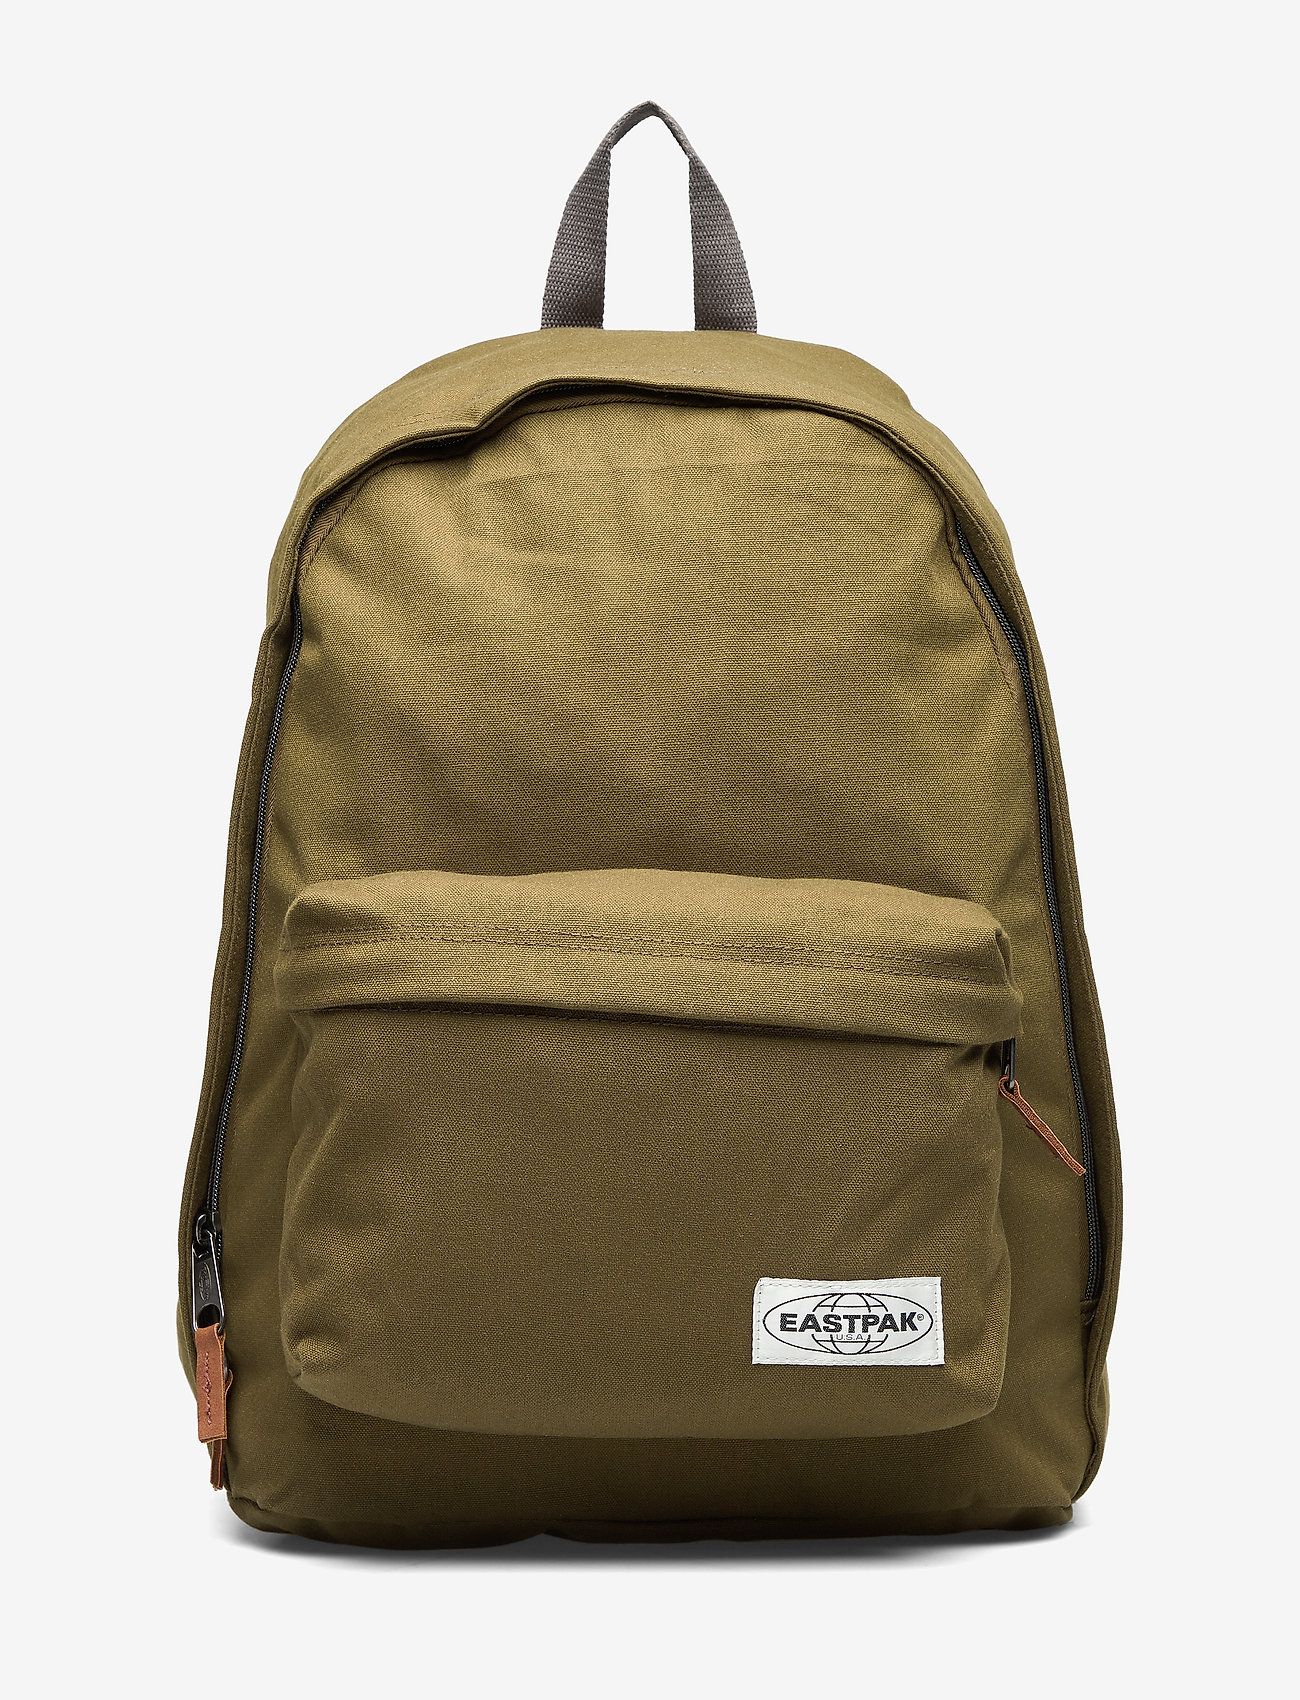 Eastpak - OUT OF OFFICE - backpacks - opgrade green